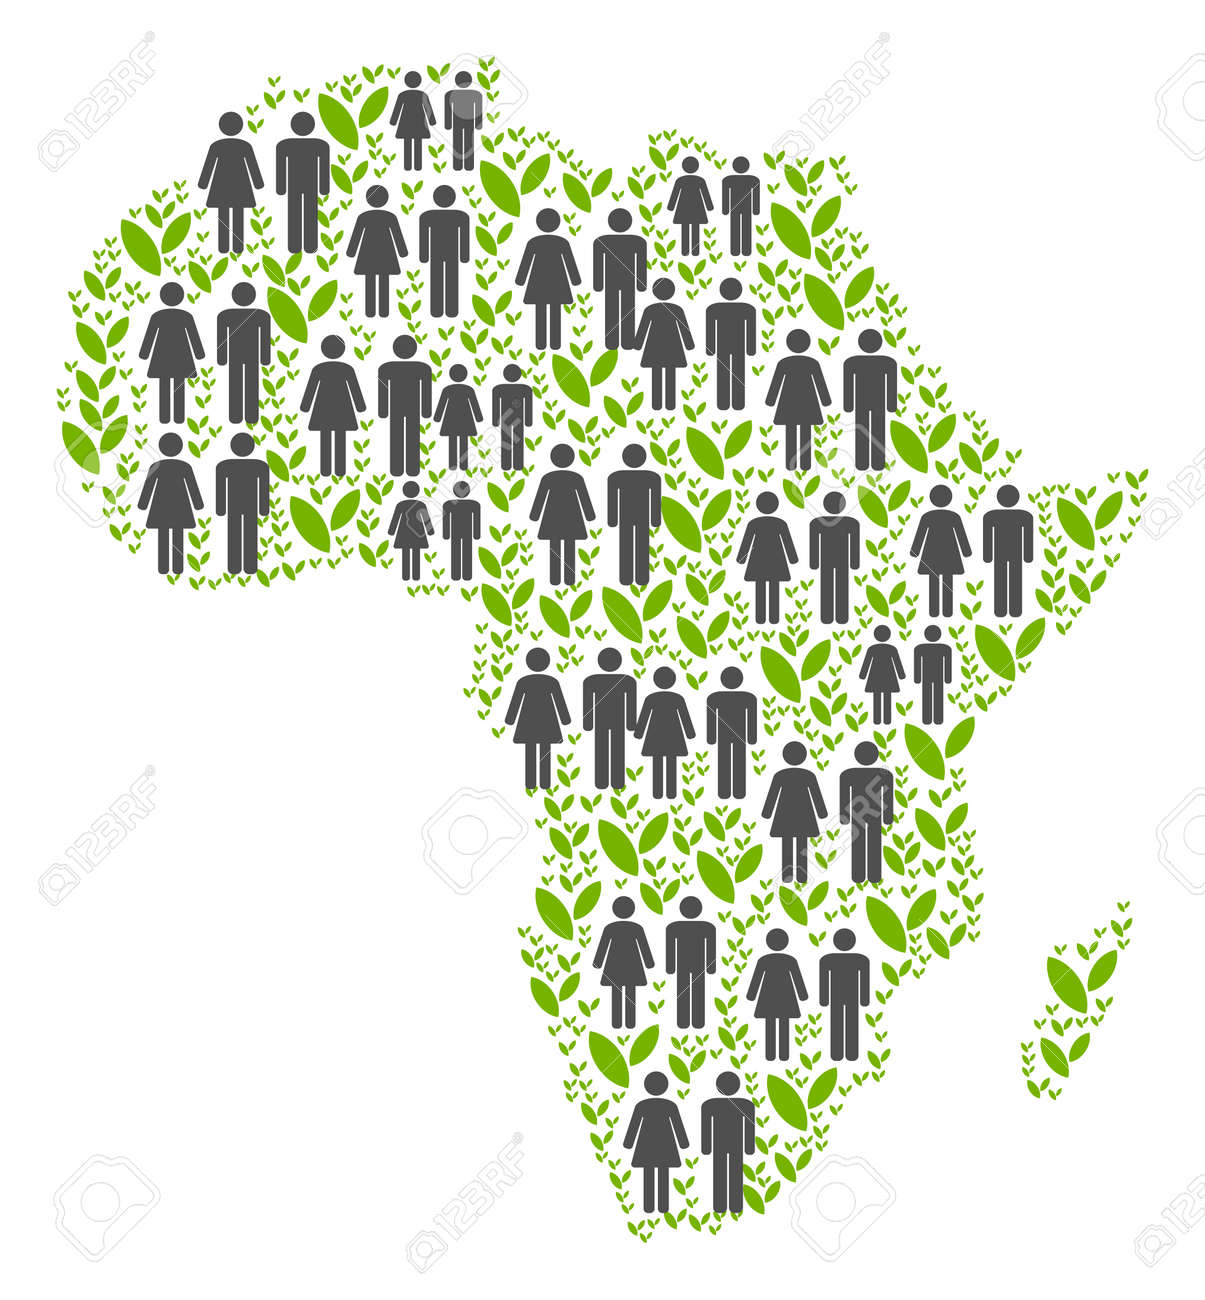 People Population And Ecology Africa Map. Vector Mosaic Of Africa